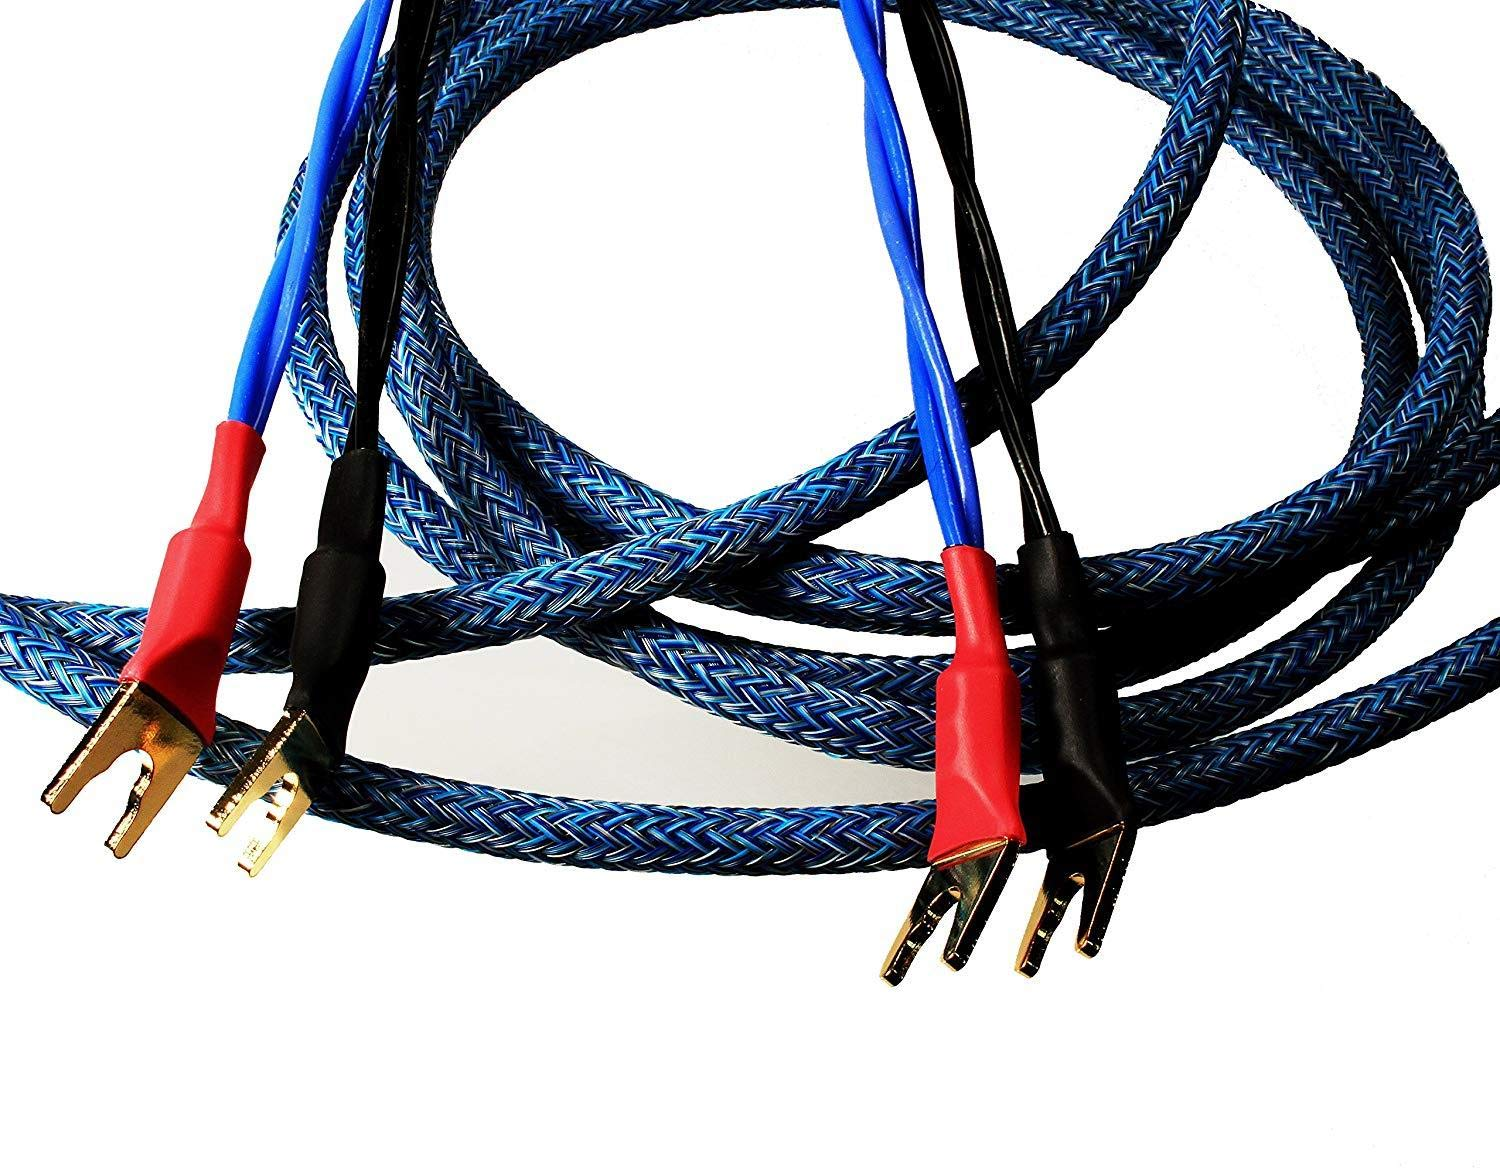 Better Cables (Pair-2 Cables for 2 Speakers) Blue Truth II Reference Speaker Cables - High-End, High-Performance, Premium Hi-Fi Audio with Gold Plated Spades - 6 Feet